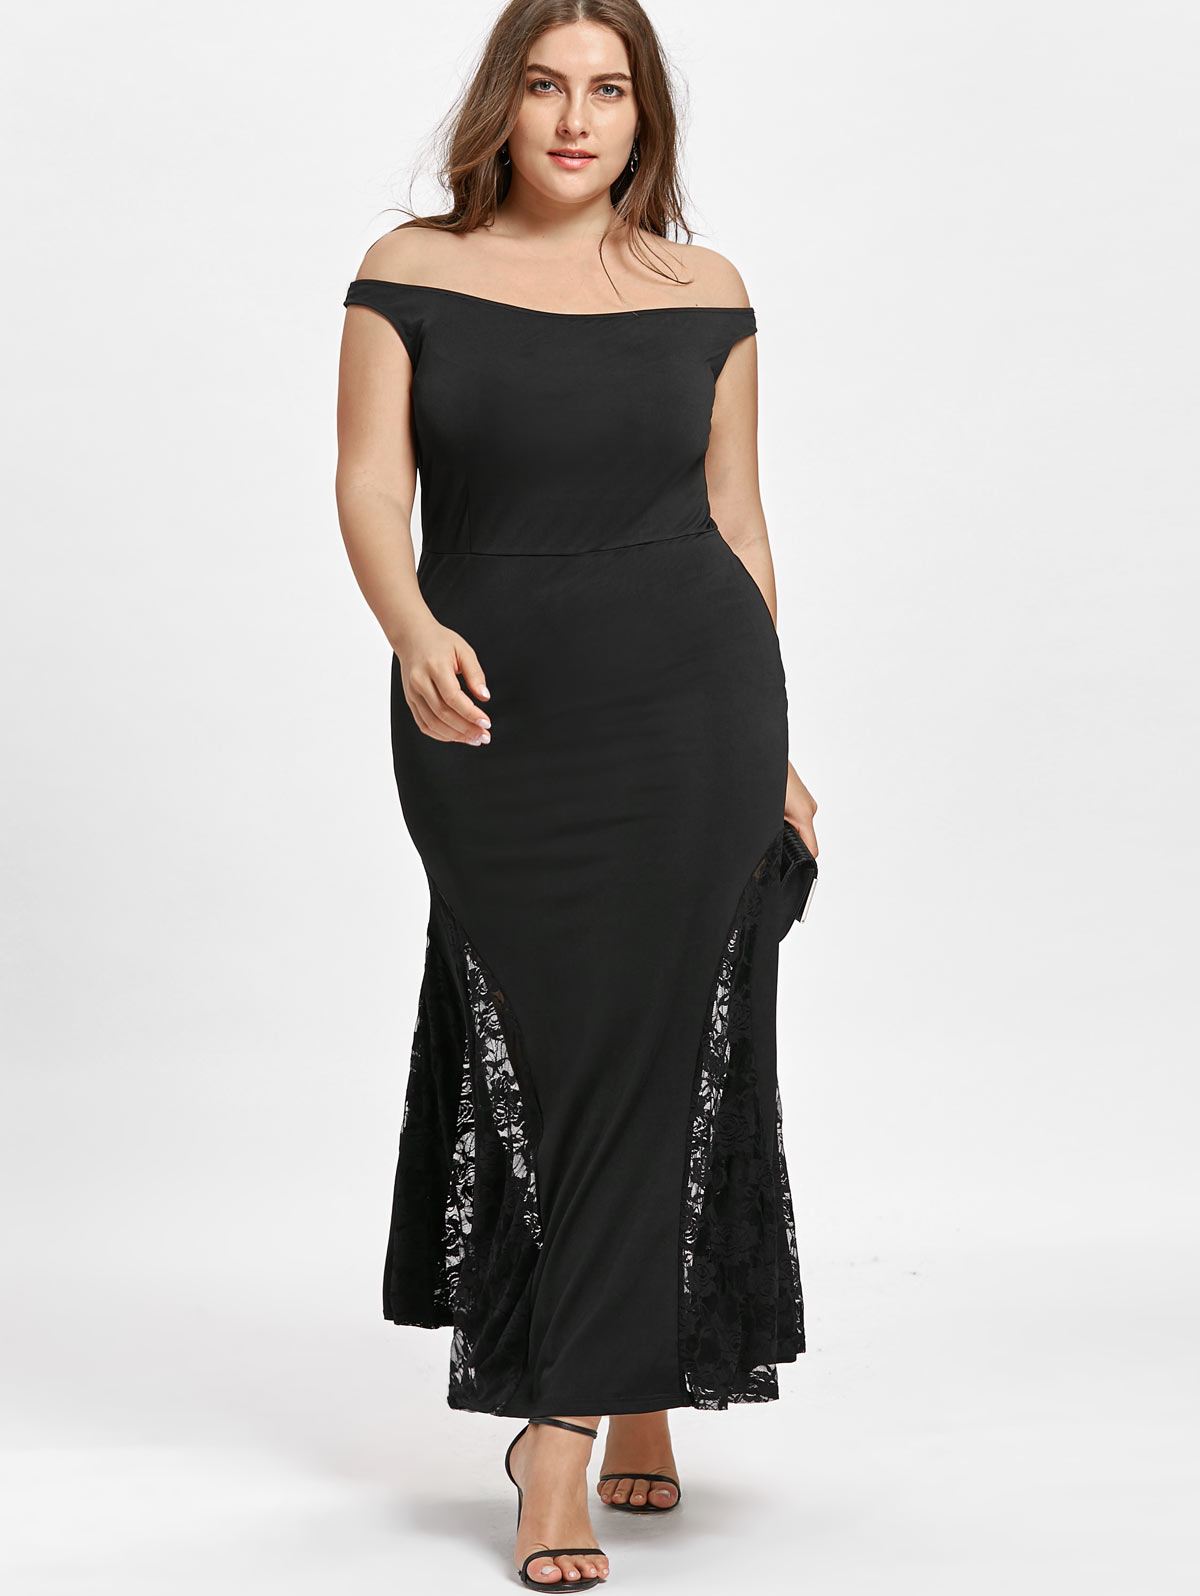 2ed30d0ec46e Dresses Length: Ankle-Length Neckline: Off The Shoulder Sleeve Length: Short  Sleeves Waist: High Waisted Embellishment: Lace,Panel Pattern Type: Solid  Color